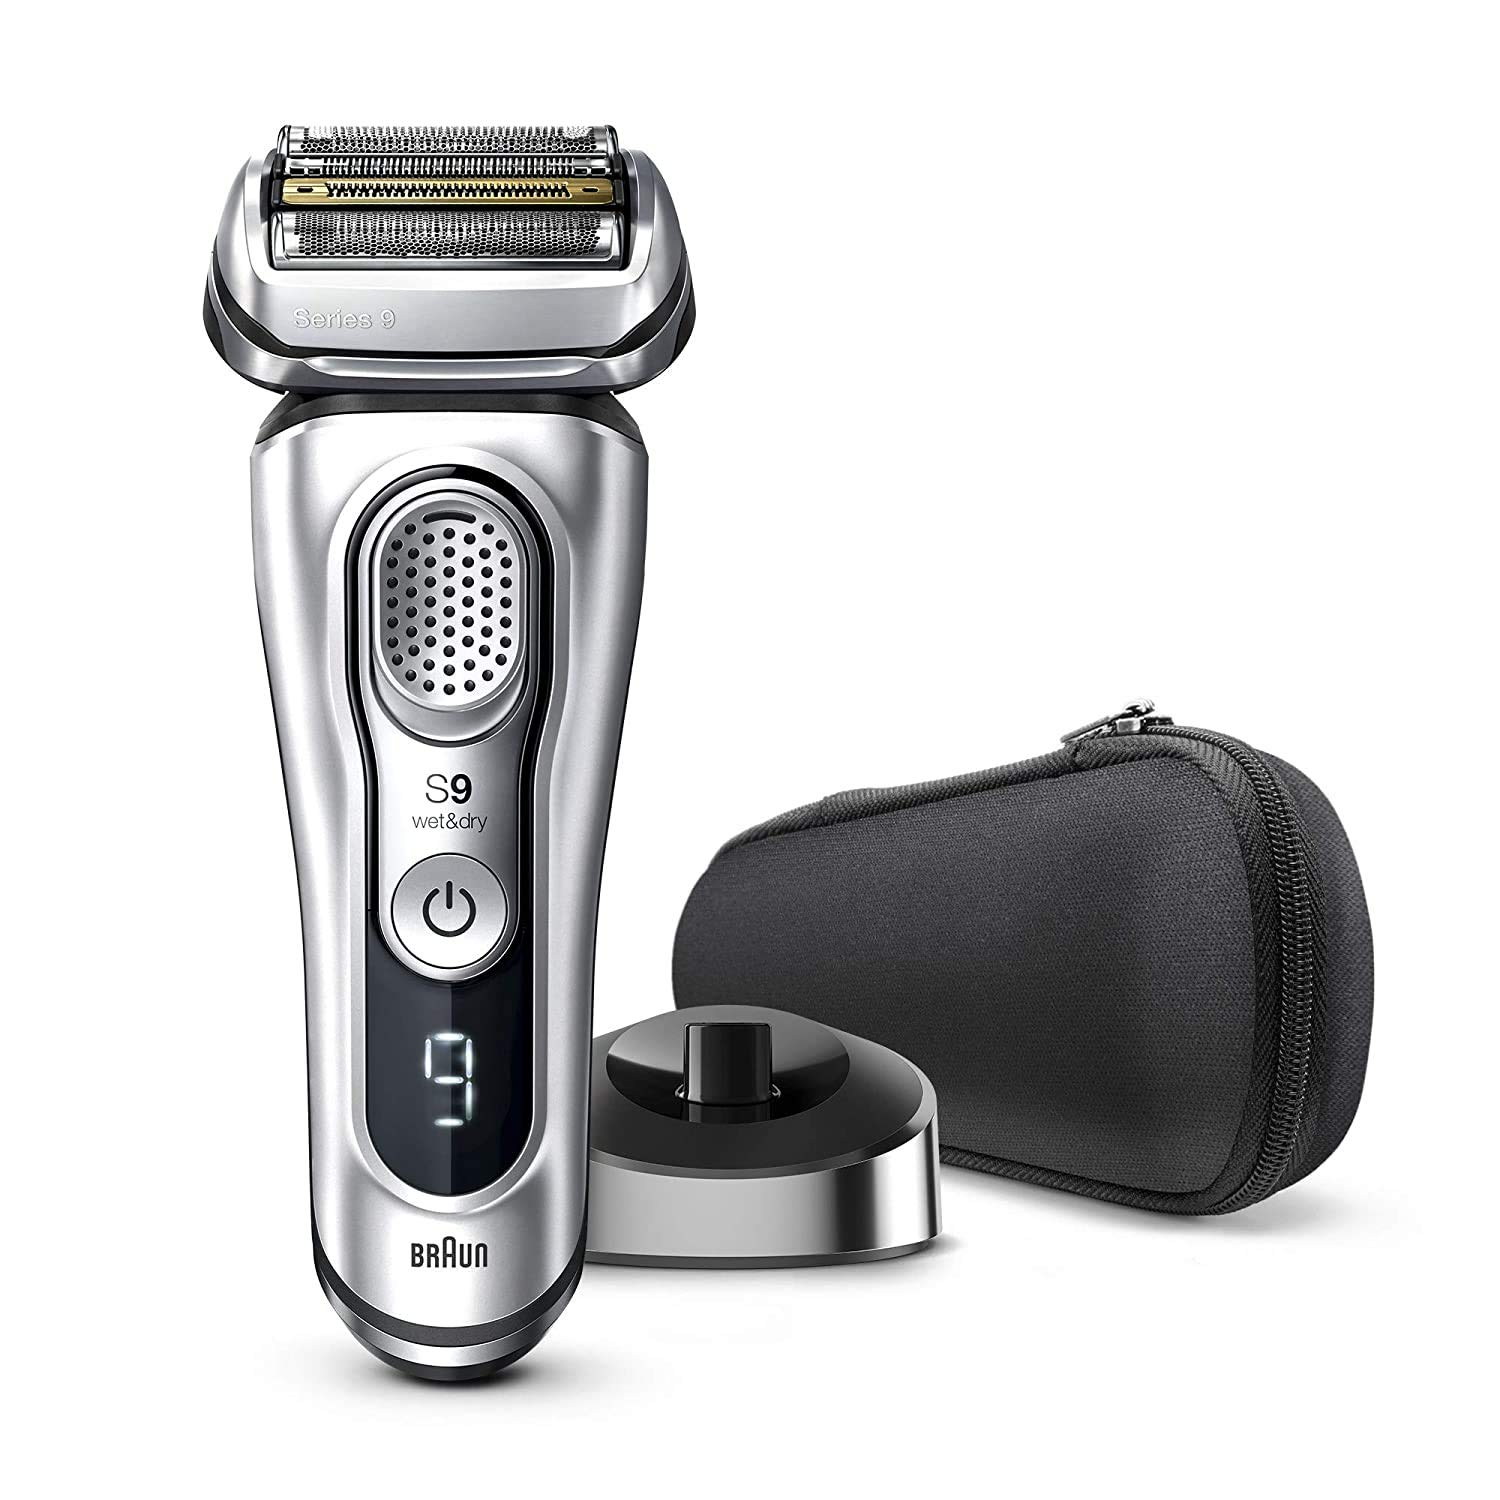 Braun Series 9 9330s Wet/Dry Electric Shaver with Pop-Up Precision Trimmer